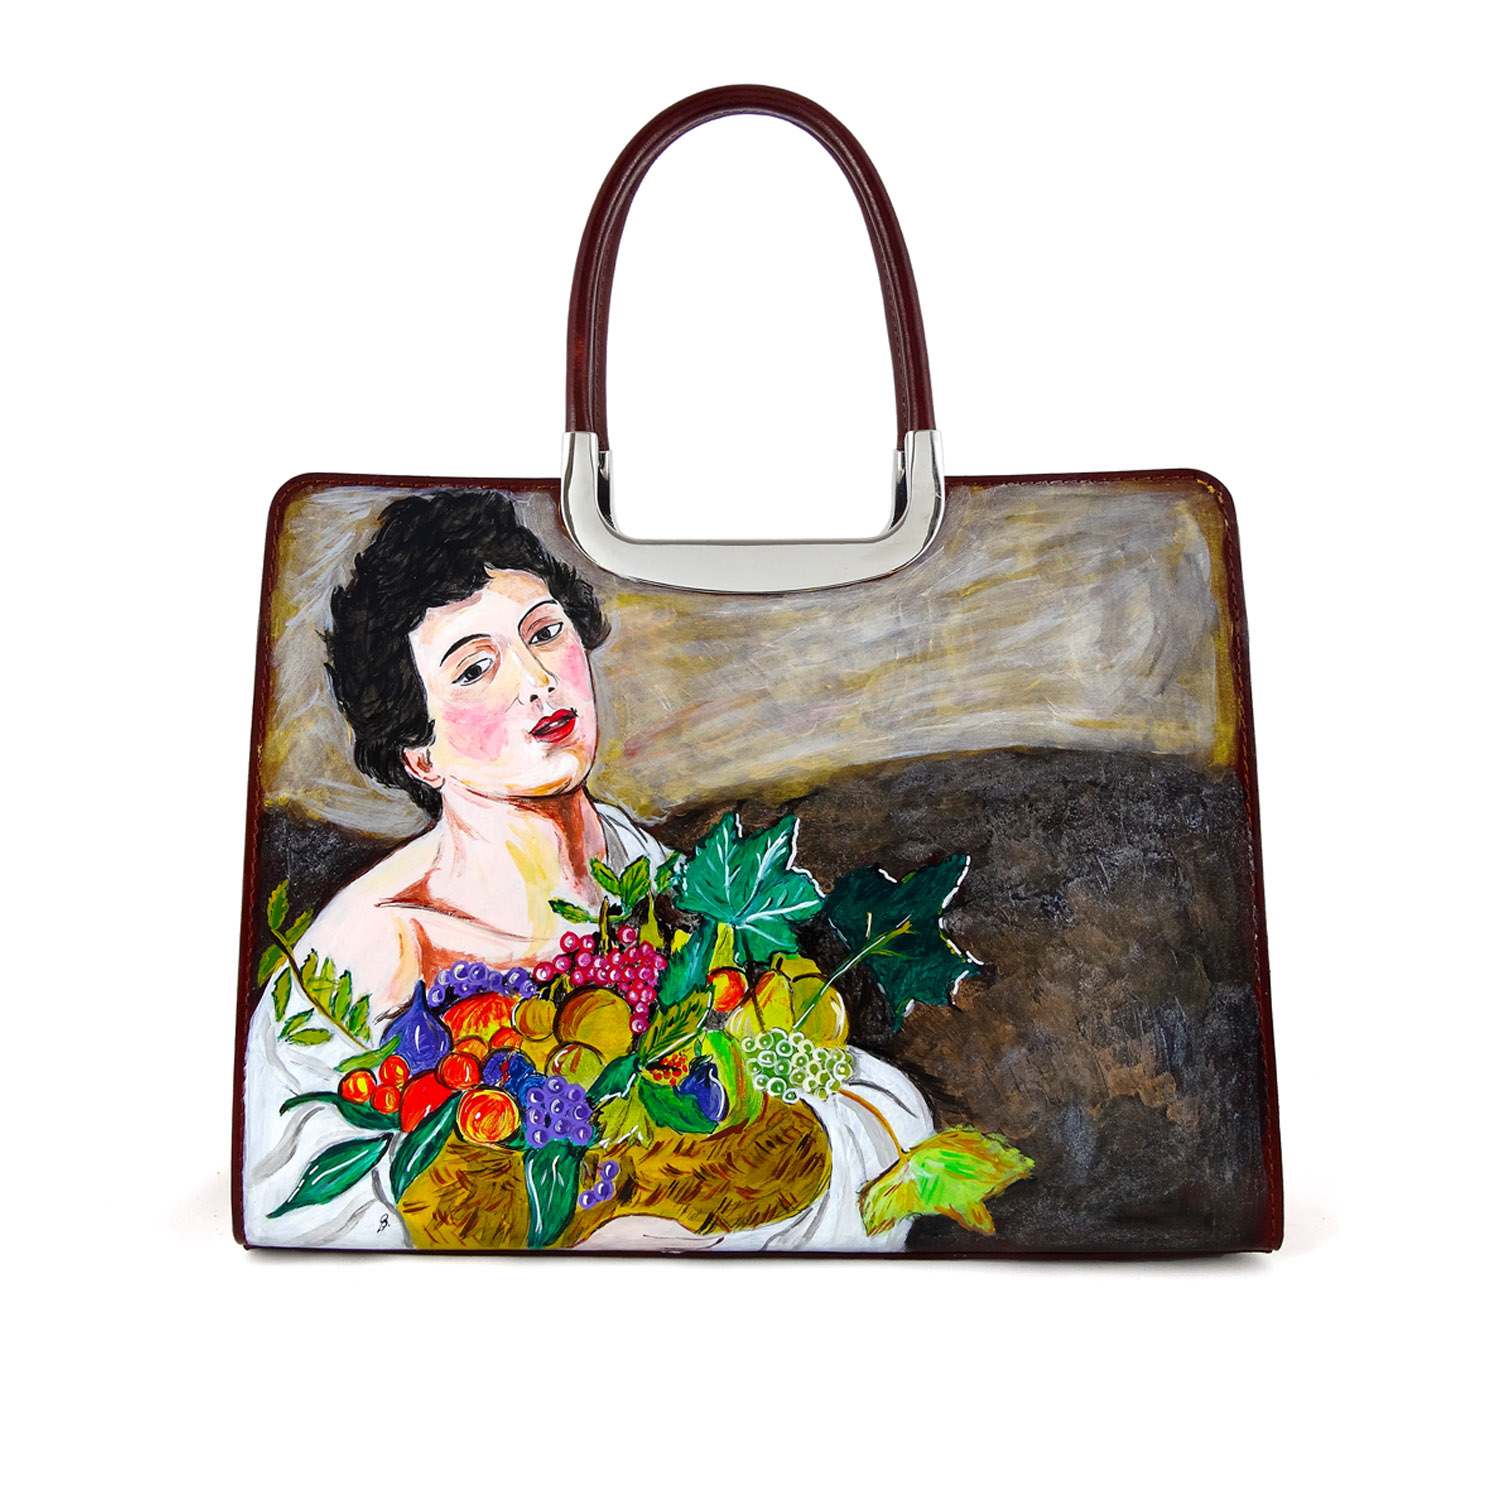 Hand-painted bag - Child with a Basket of Fruit by Caravaggio